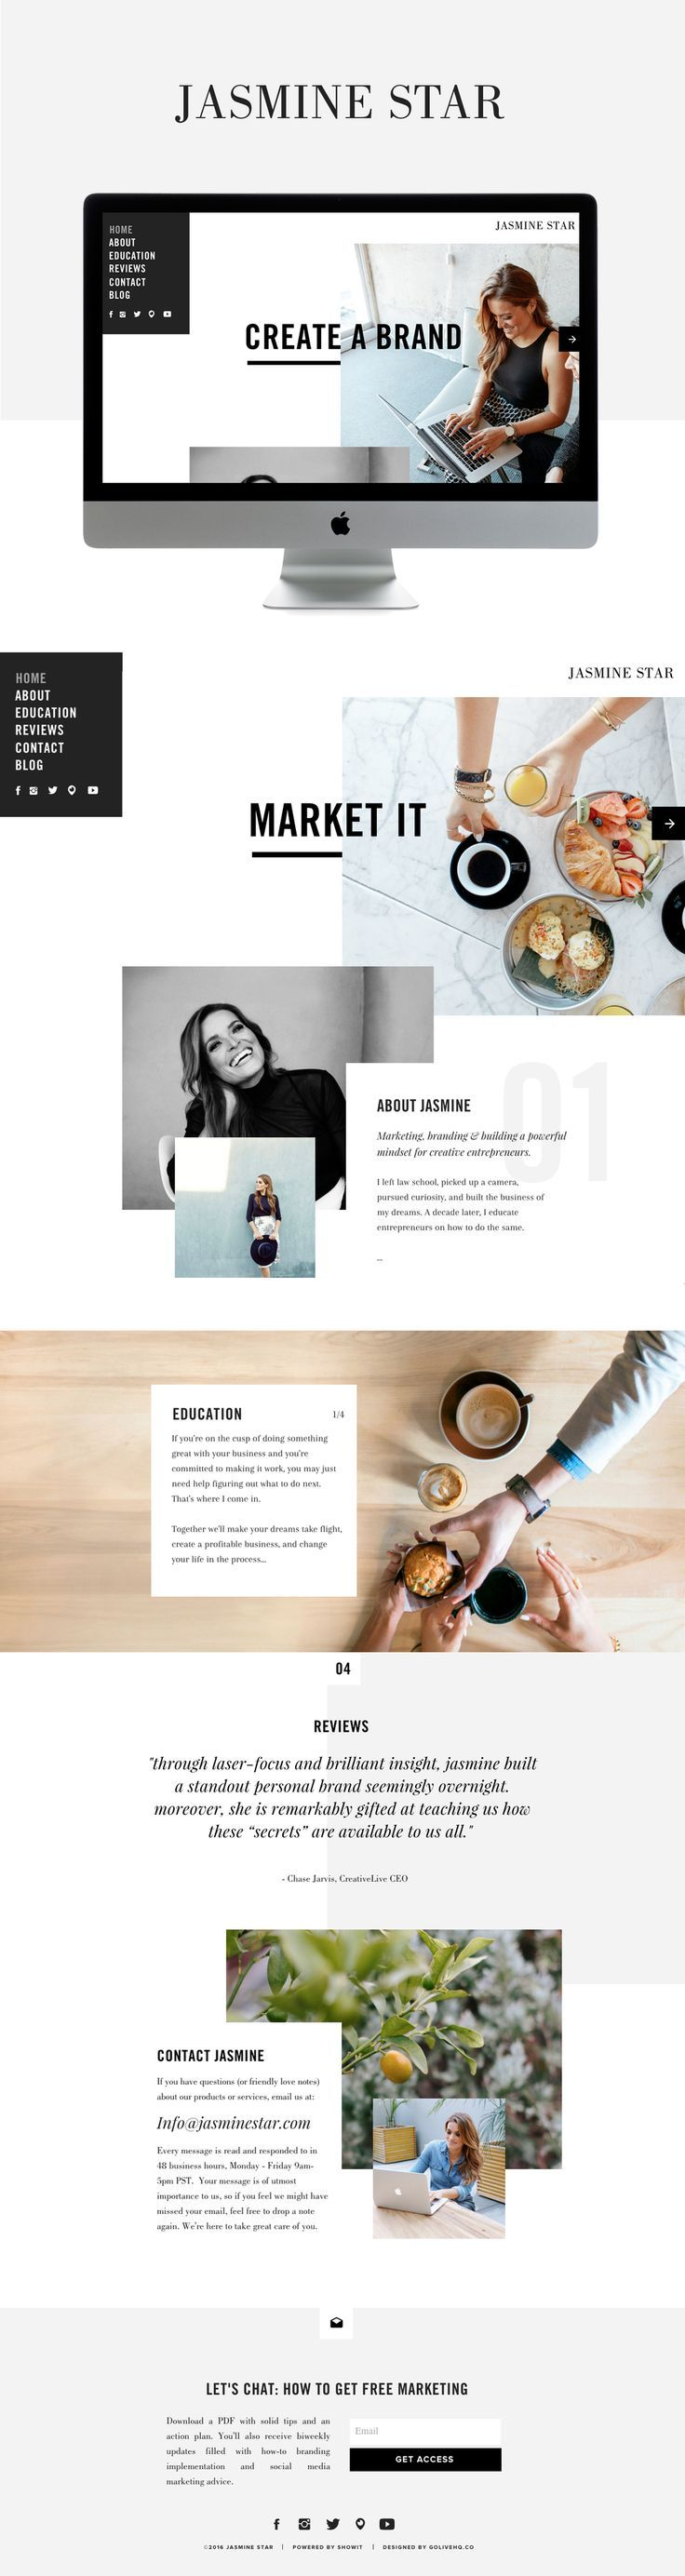 jasmine star website - inspiration  |  by http://golivehq.co                                                                                                                                                                                 More